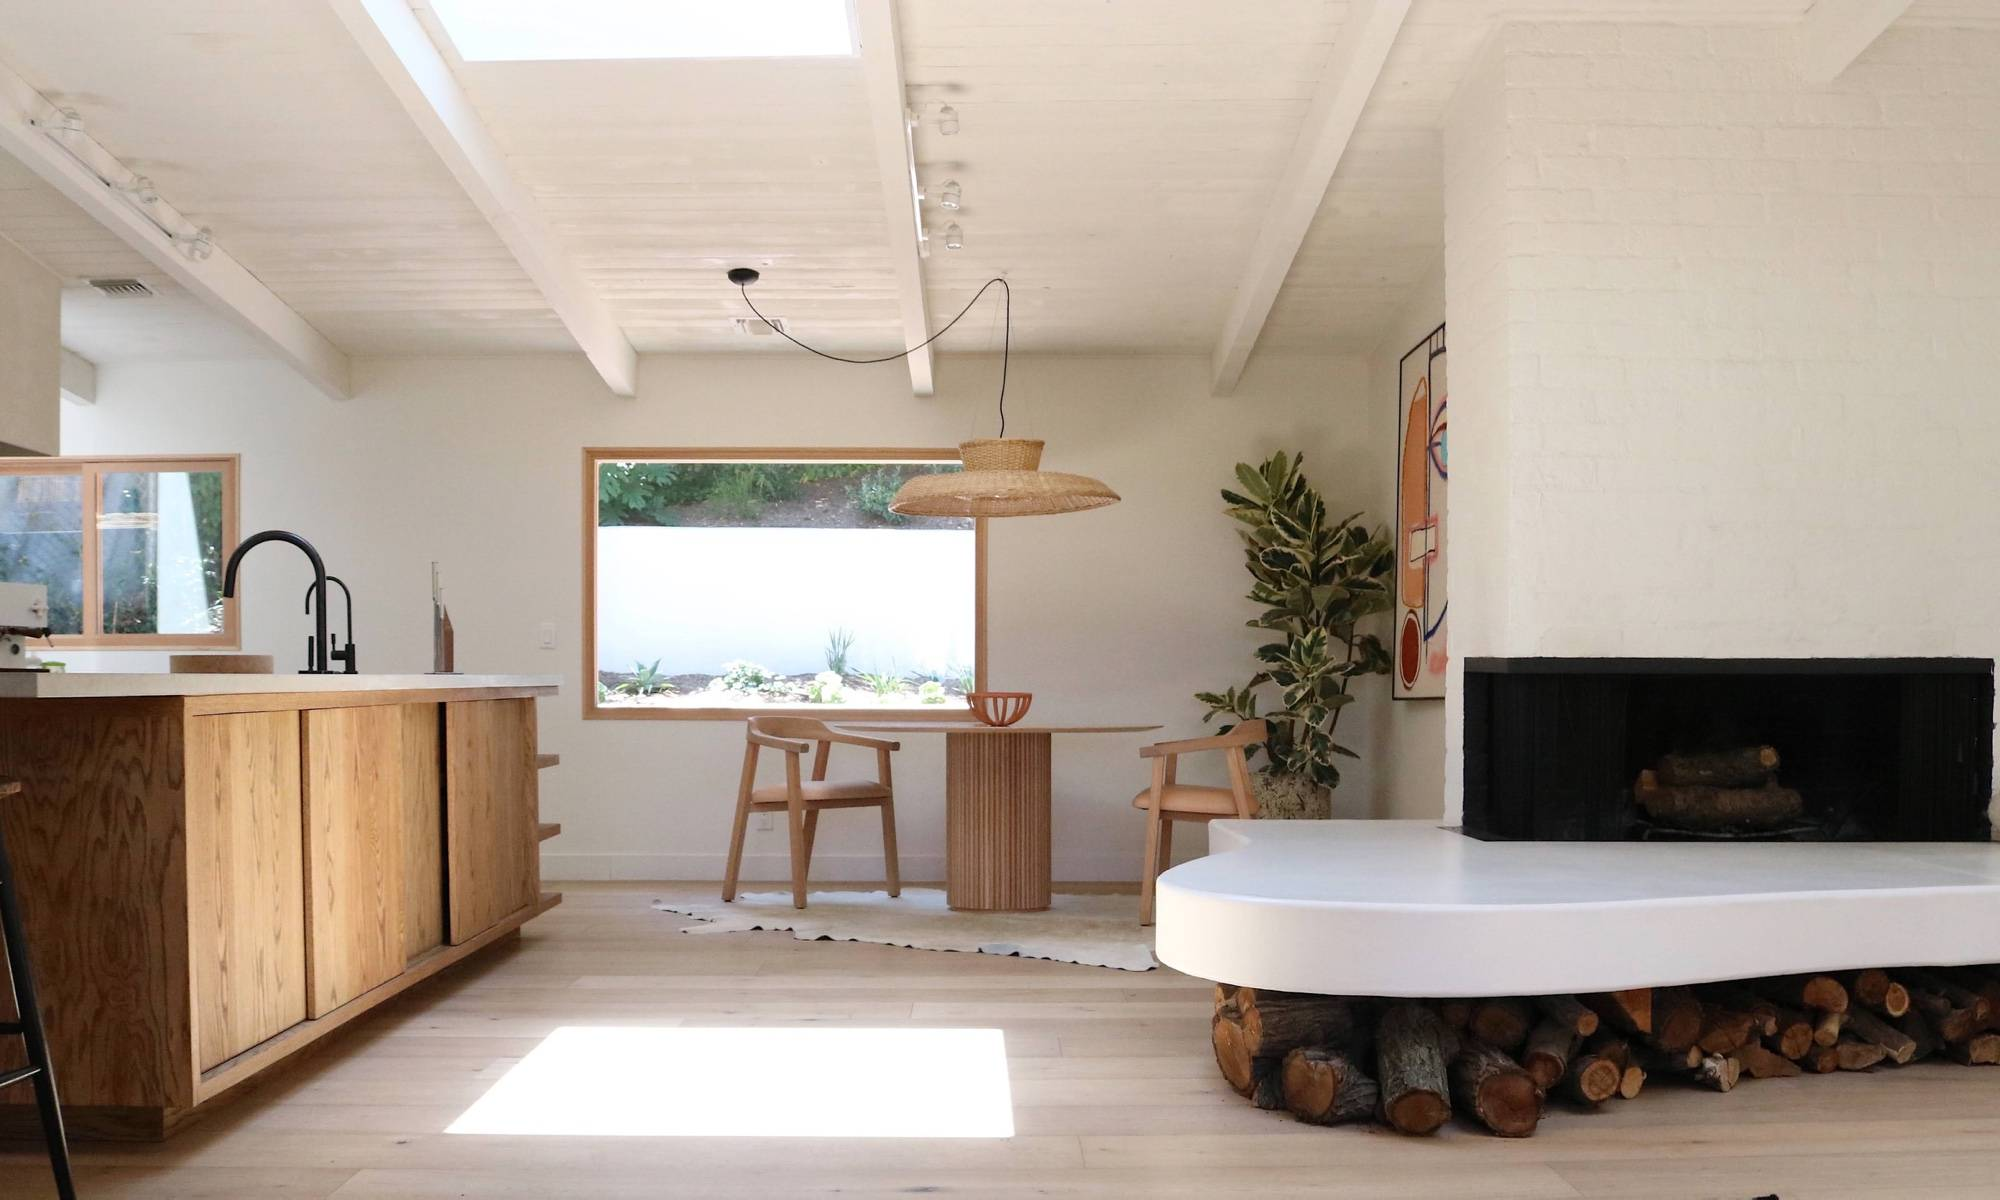 Modern Los Angeles home with chef's kitchen.